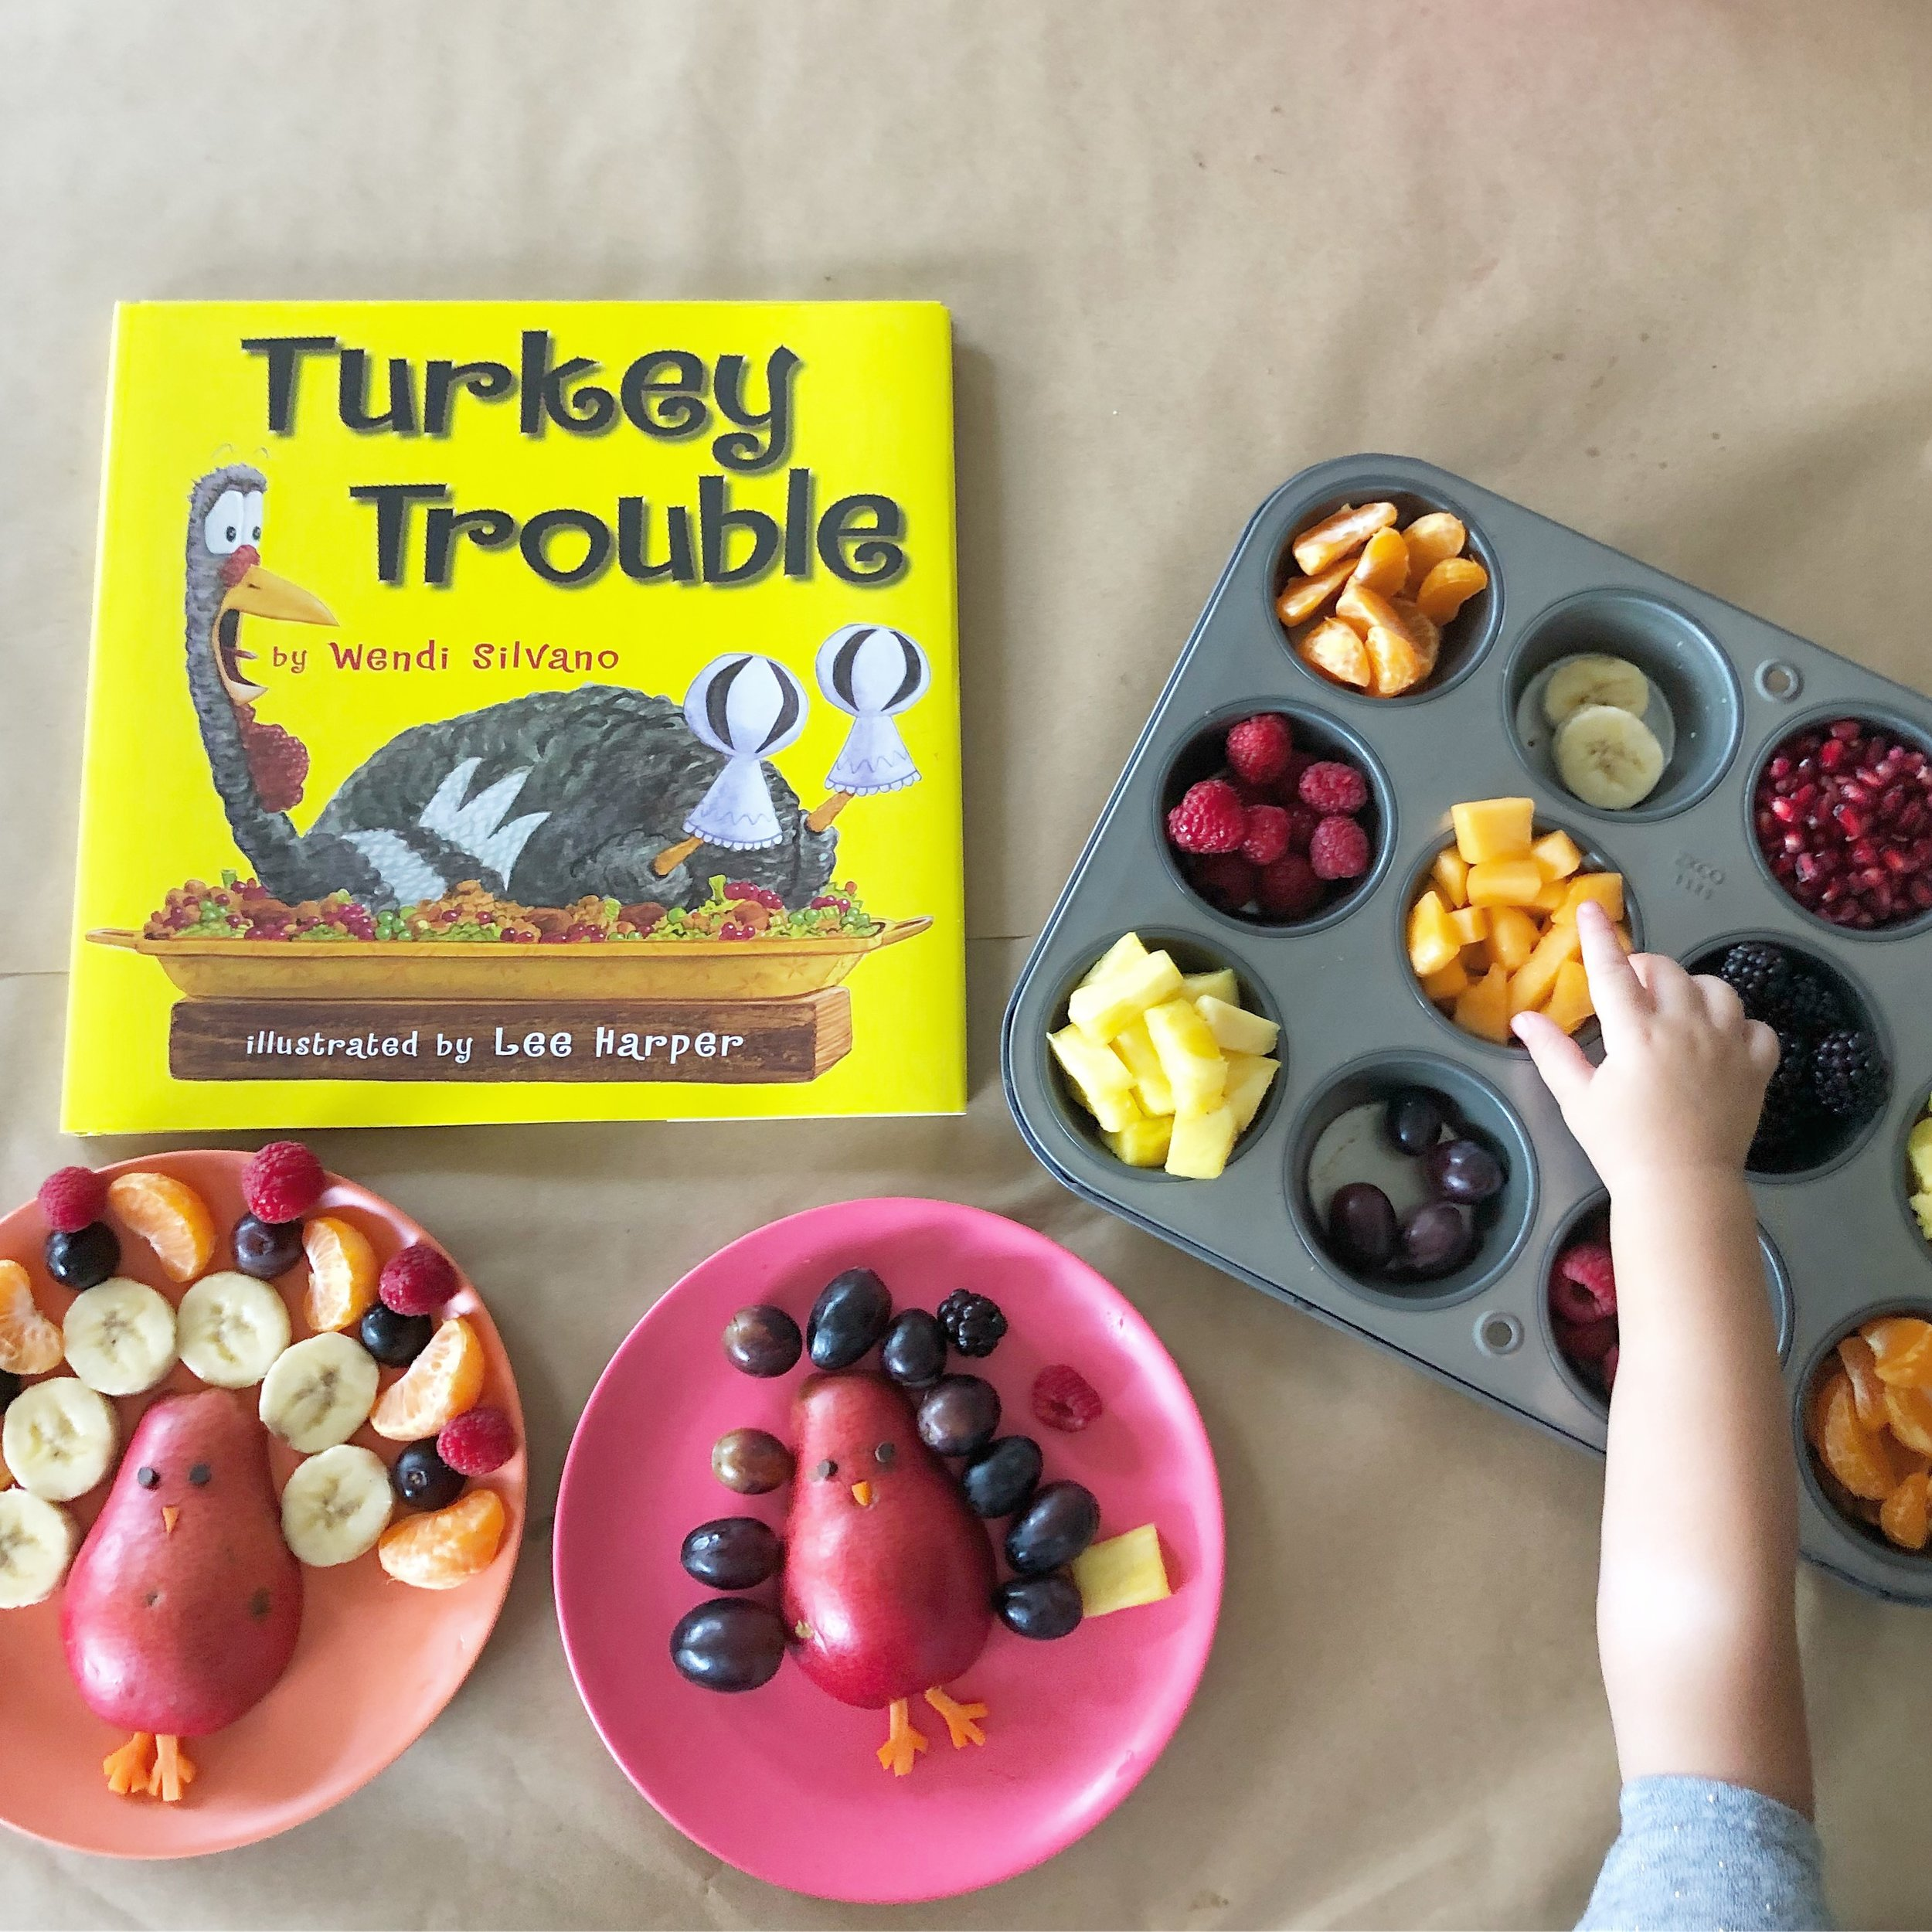 Turkey Trouble snacktivity for kids